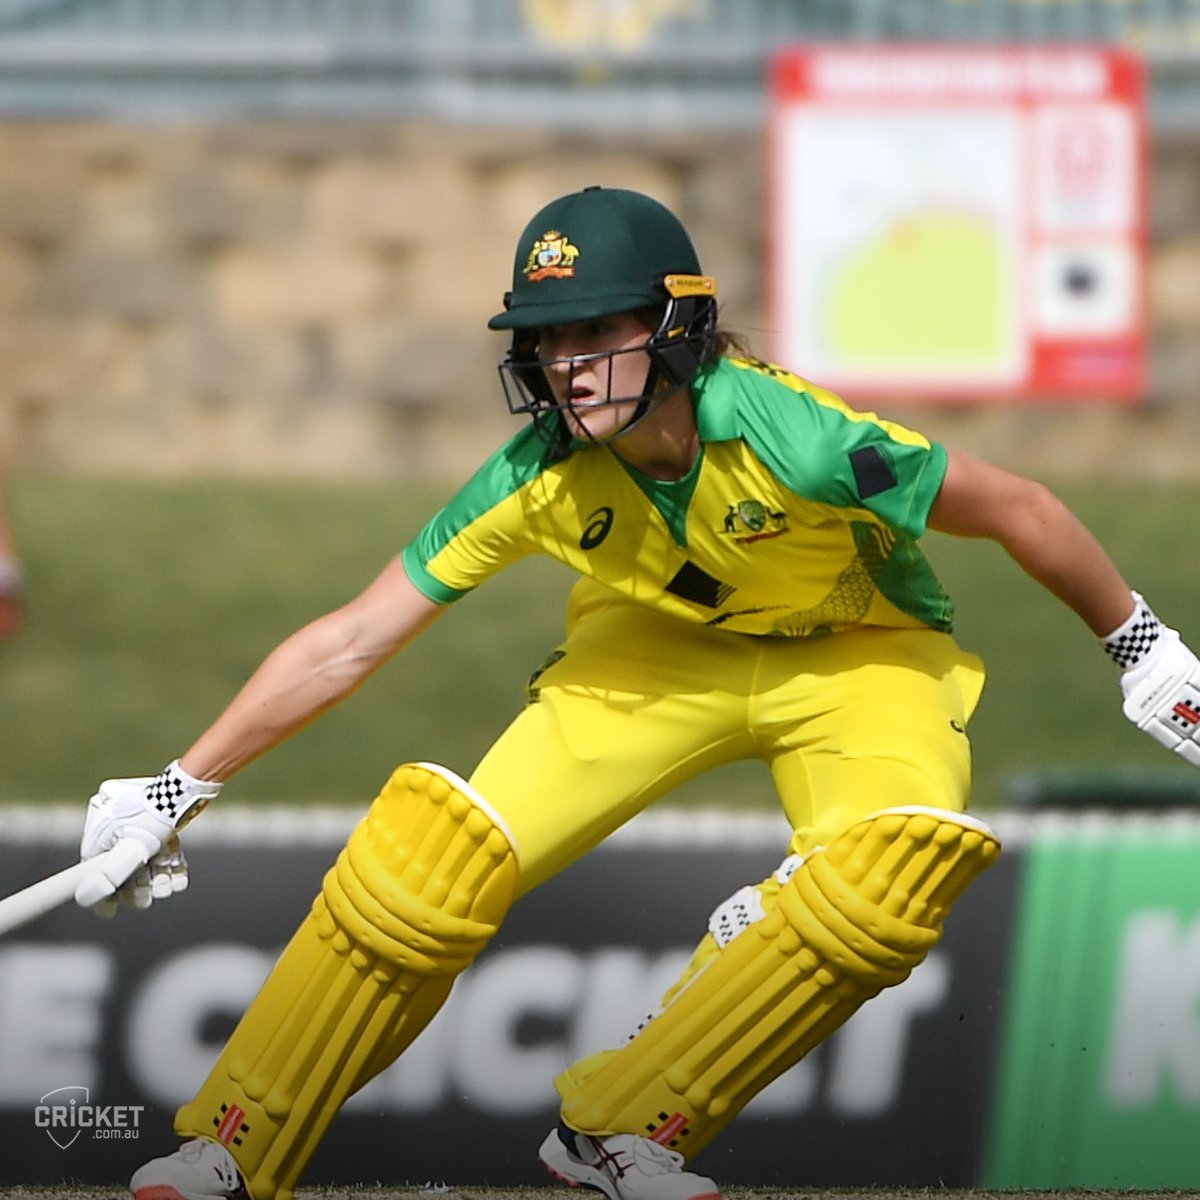 Annabel Sutherlands debut for Australia back in February was a magical moment for the 18-year-old! ✨